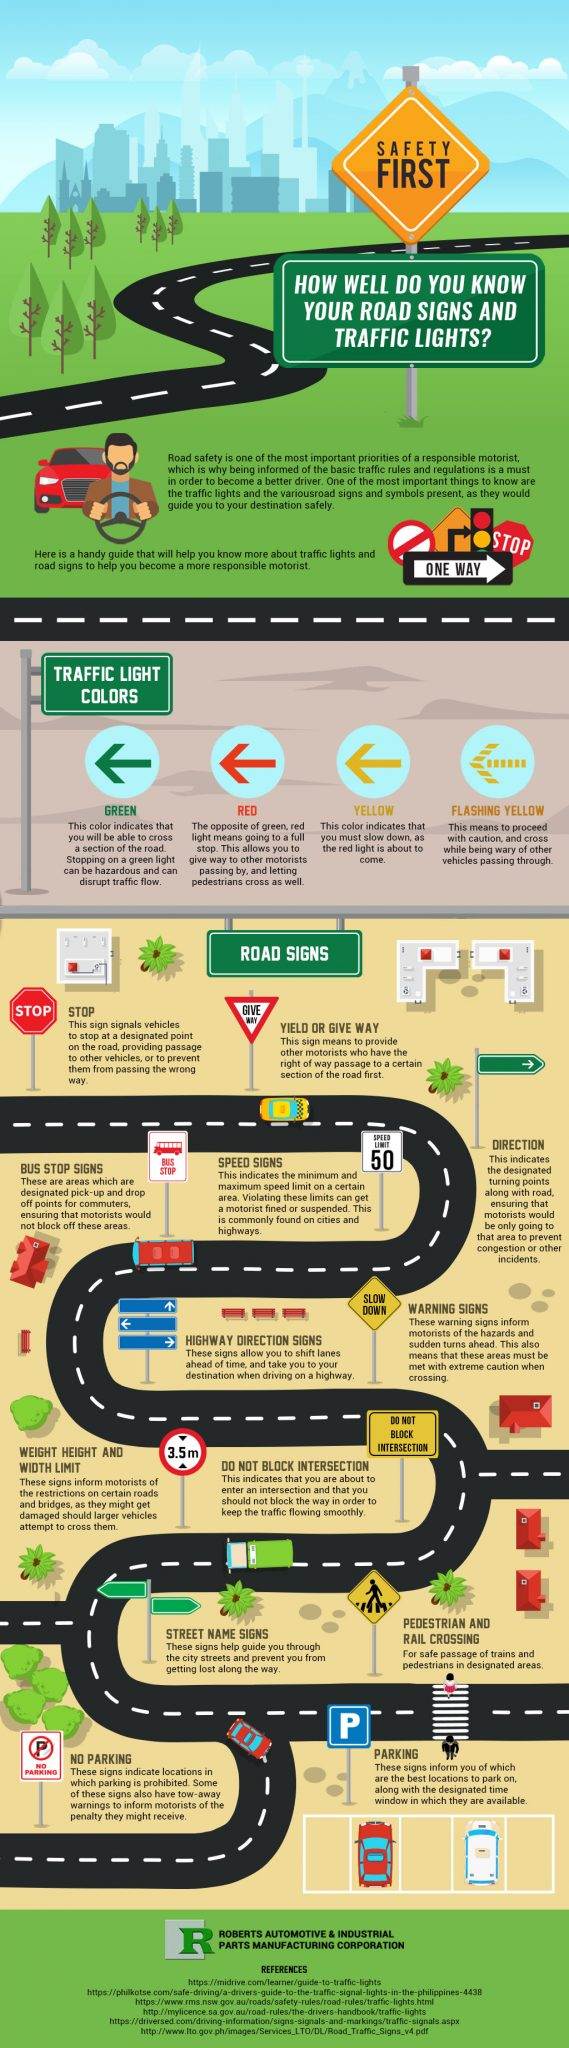 Infog Safety First How Well Do You Know Your Road Signs And Traffic Lights